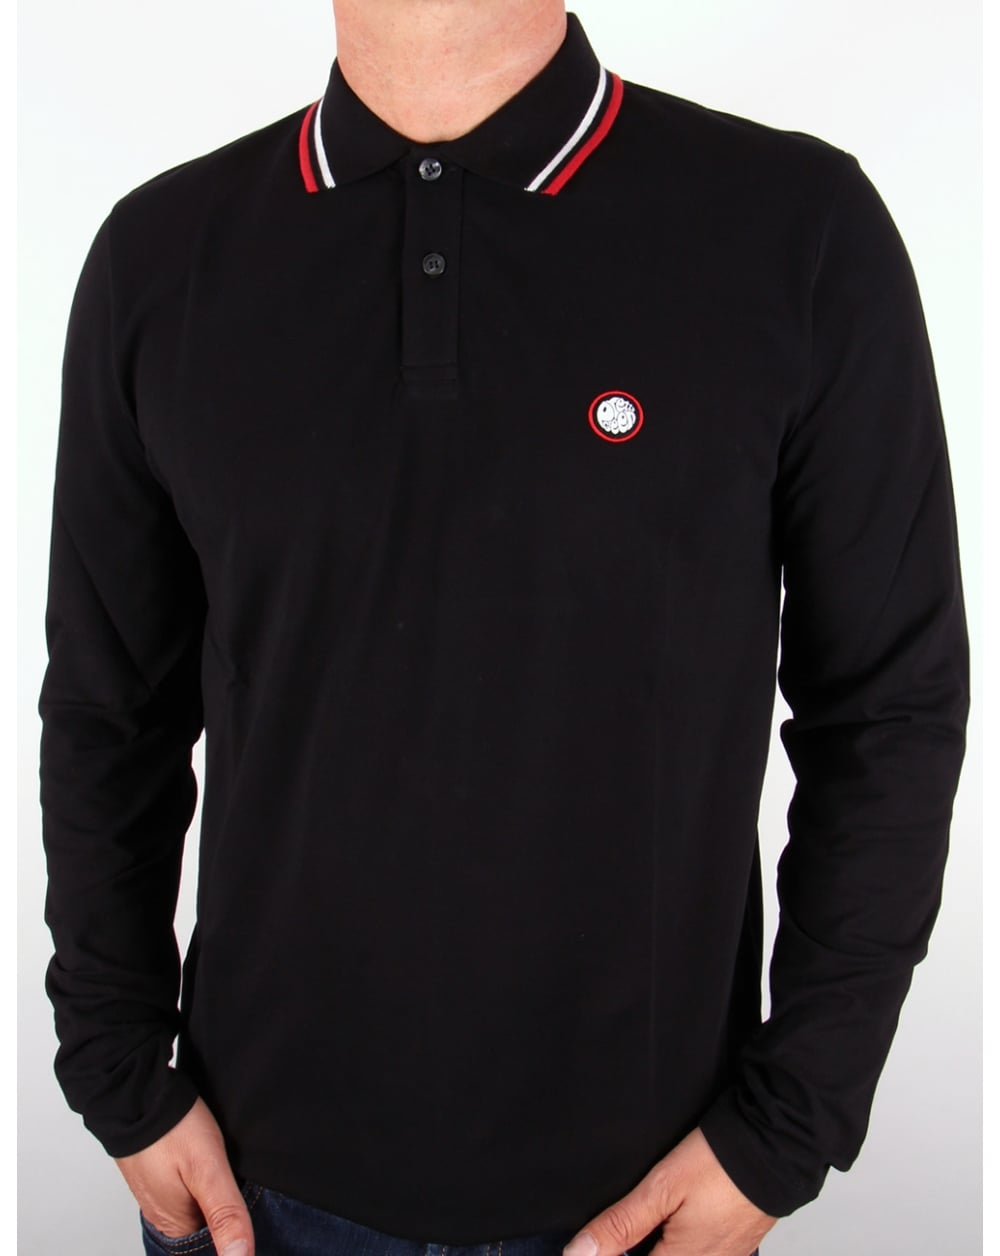 Find great deals on eBay for Long-sleeve Black Polo Shirts in Casual Shirts for Different Occasions. Shop with confidence.